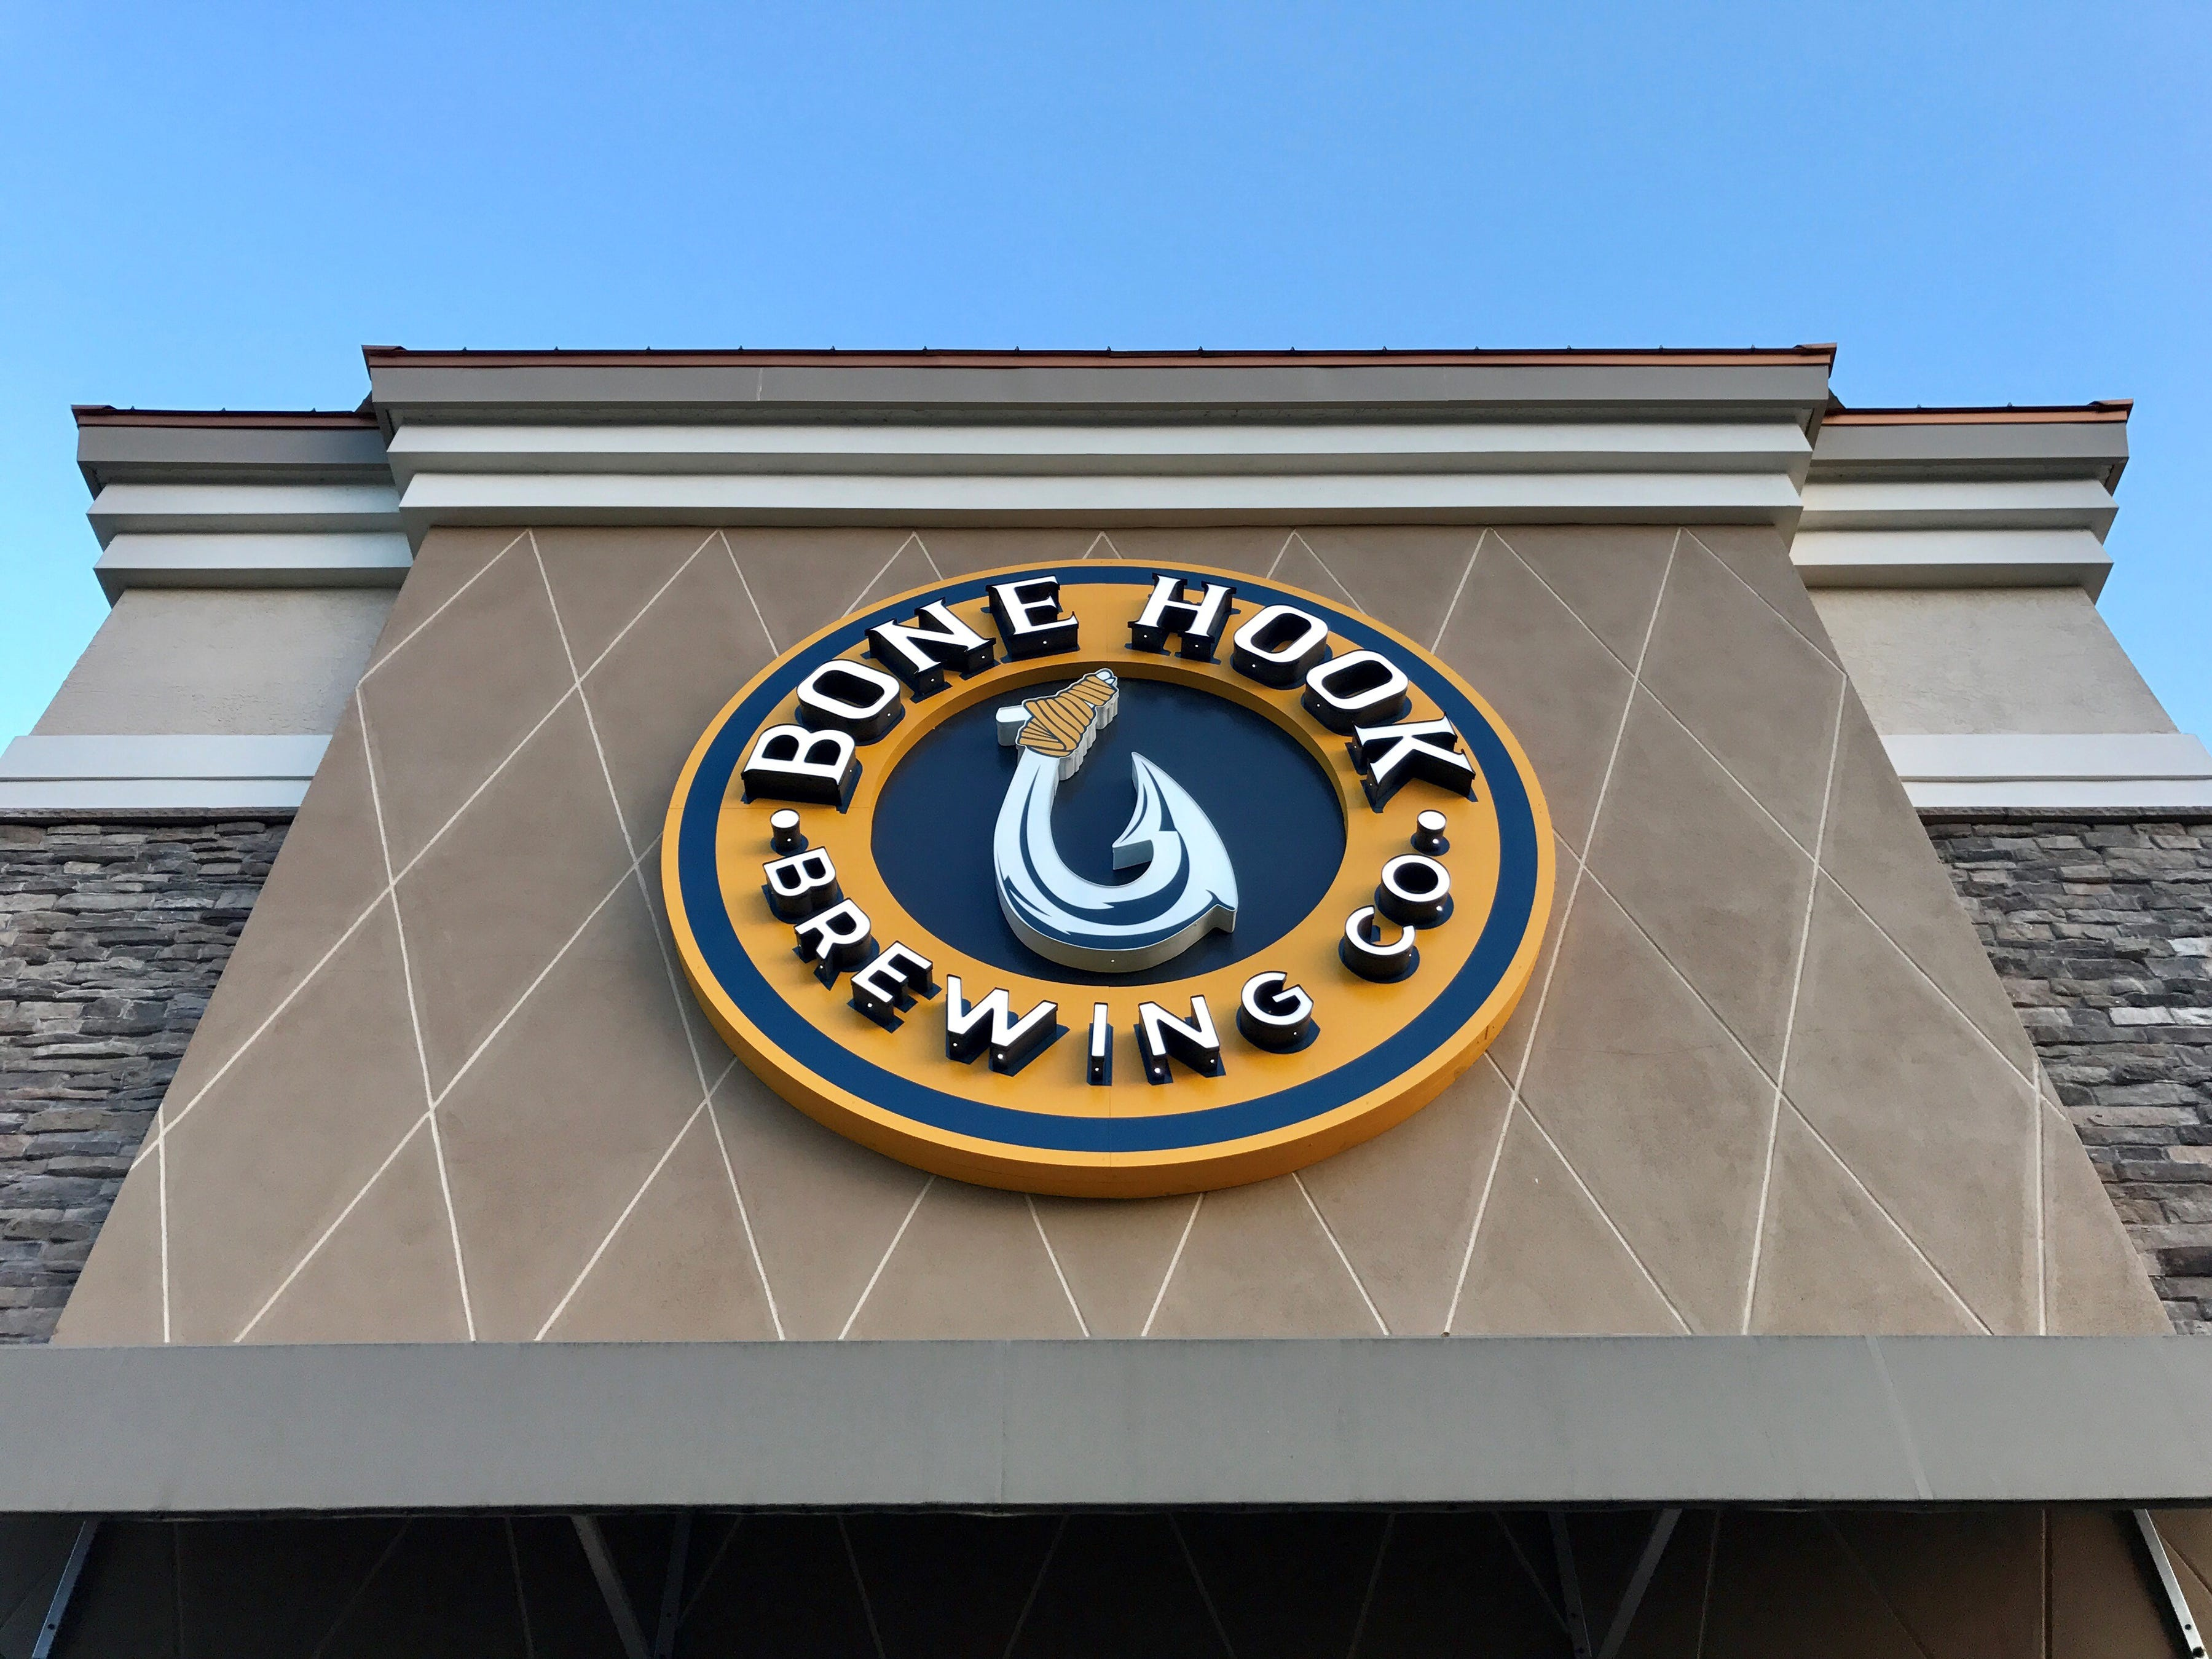 Bone Hook Brewing Co. in North Naples recently expanded its space, creating an entirely new venue with a food menu for lunch and dinner.